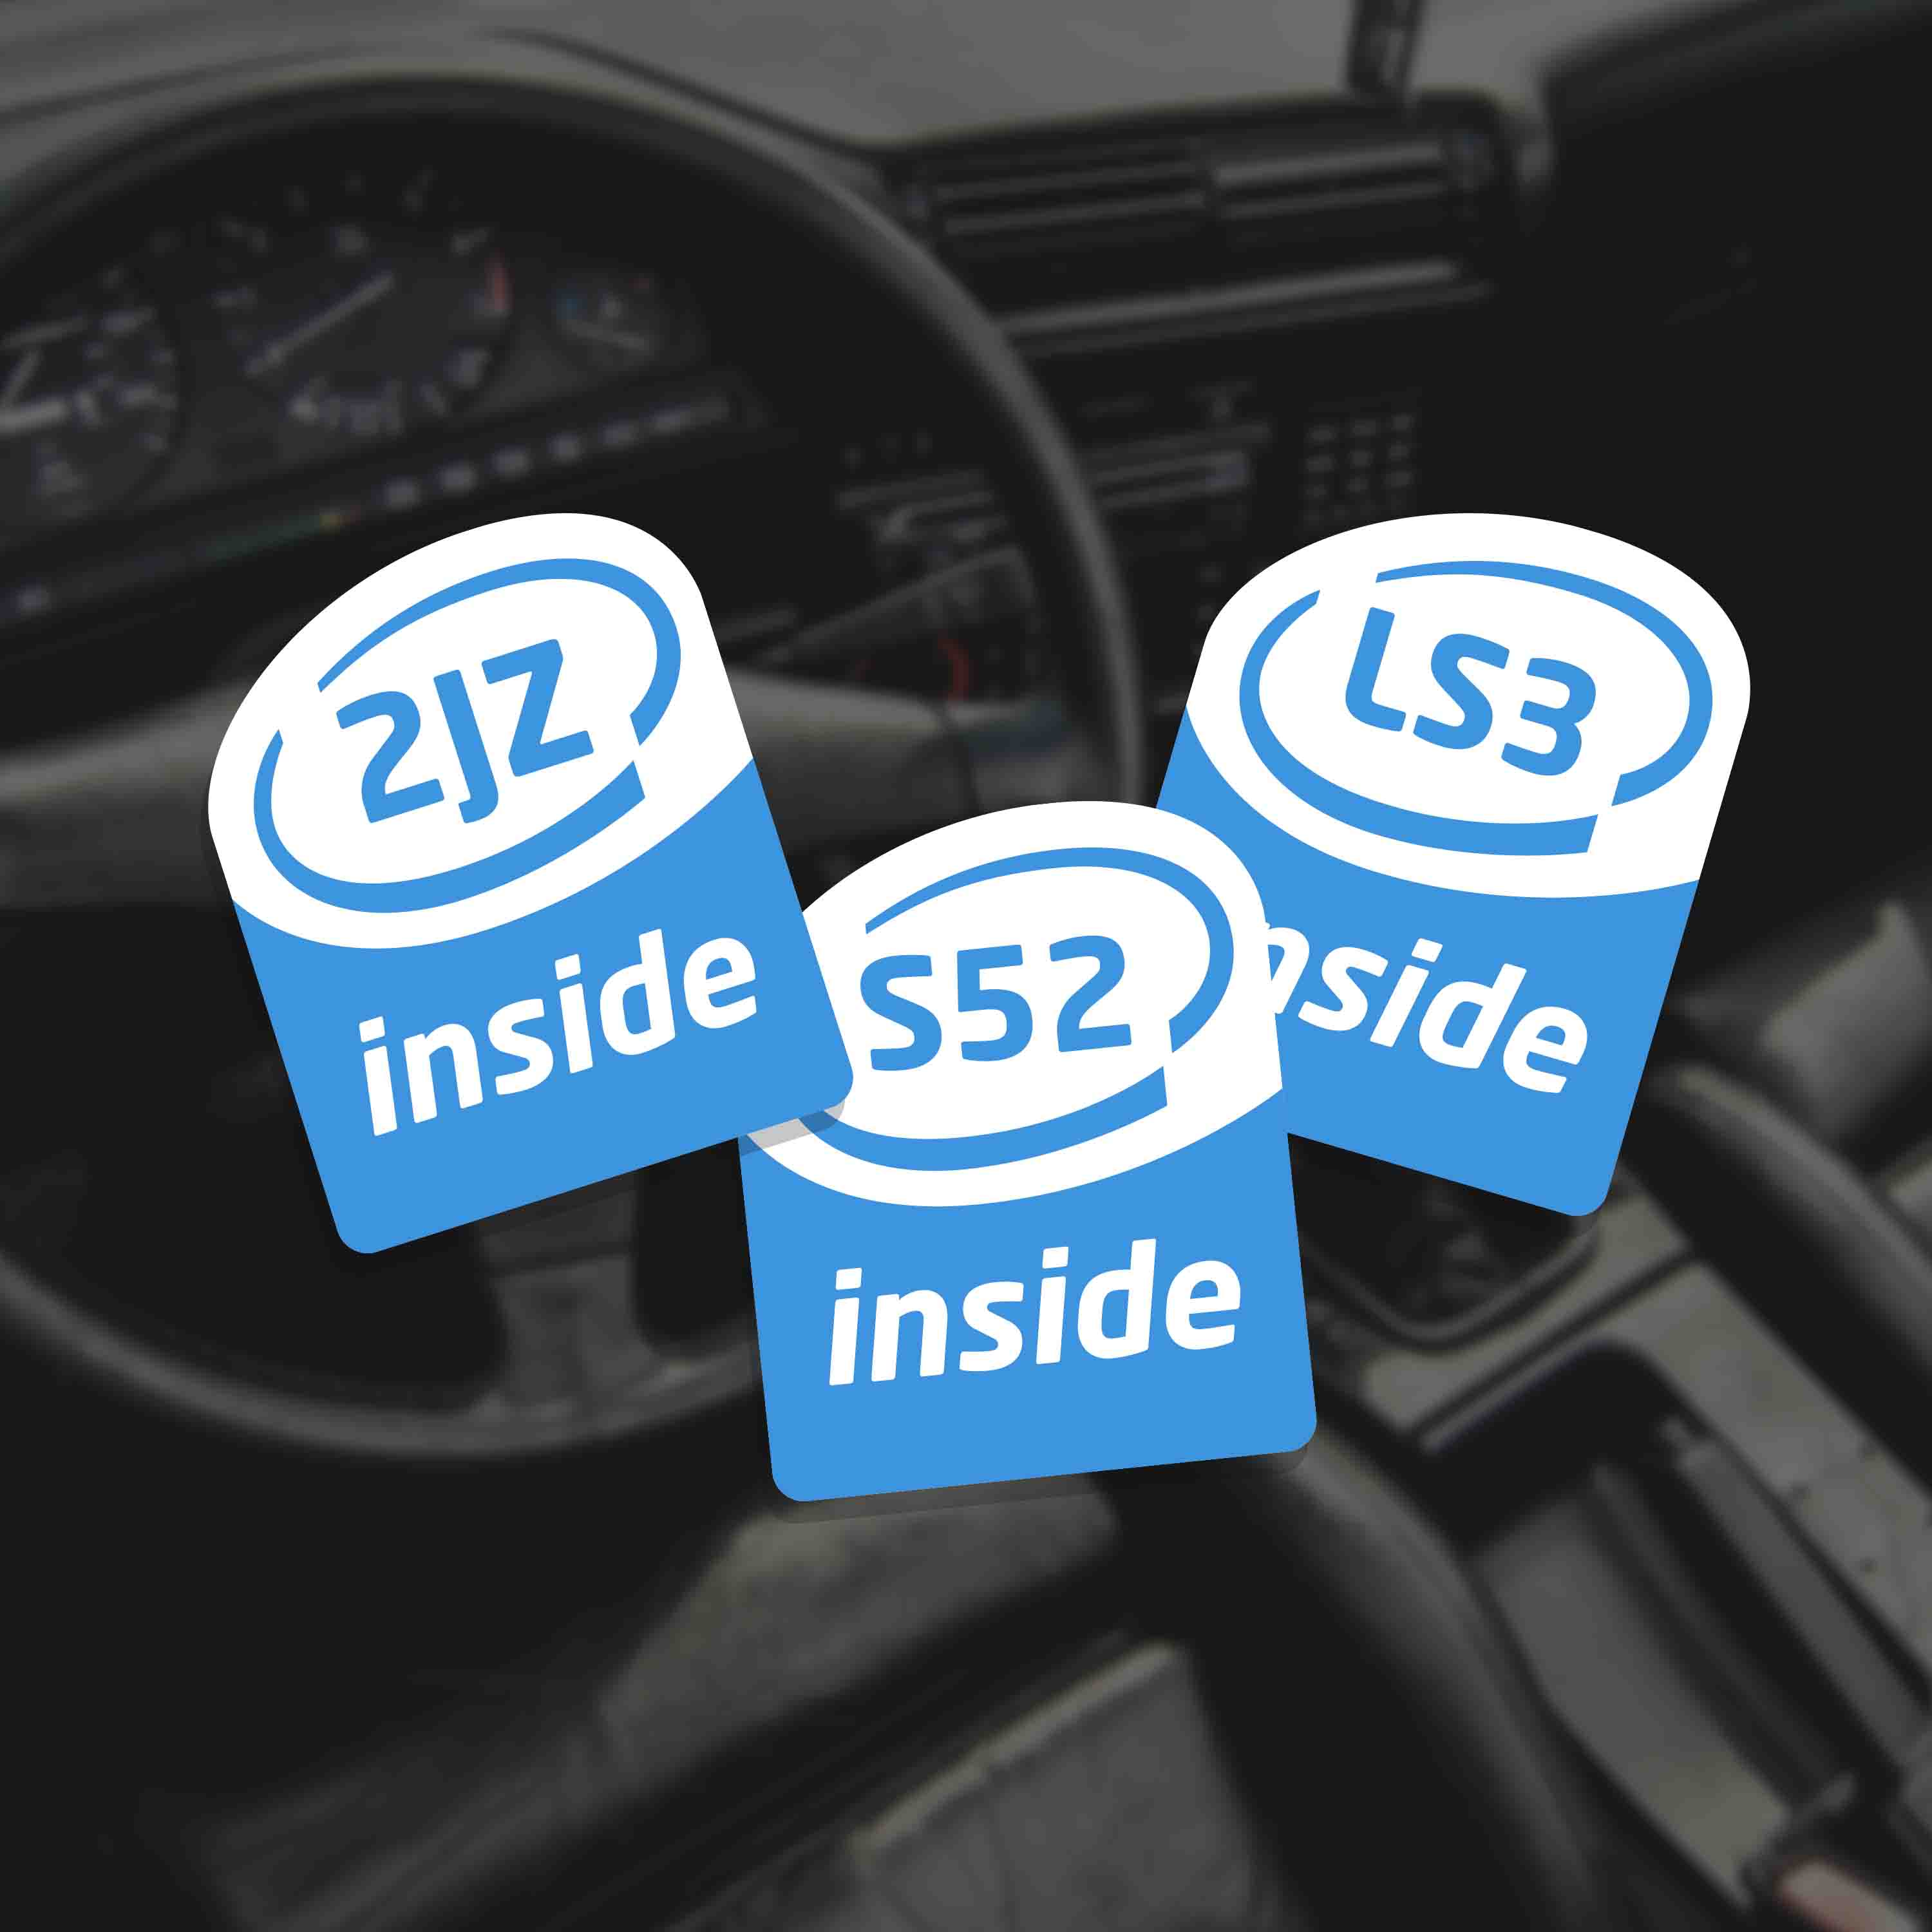 Buy two custom stickers with the engine model of your choice. Stickers resemble the Intel Inside logo. Use for S52, RB28, 2JZ, SR20, LS3 or any other engine type.